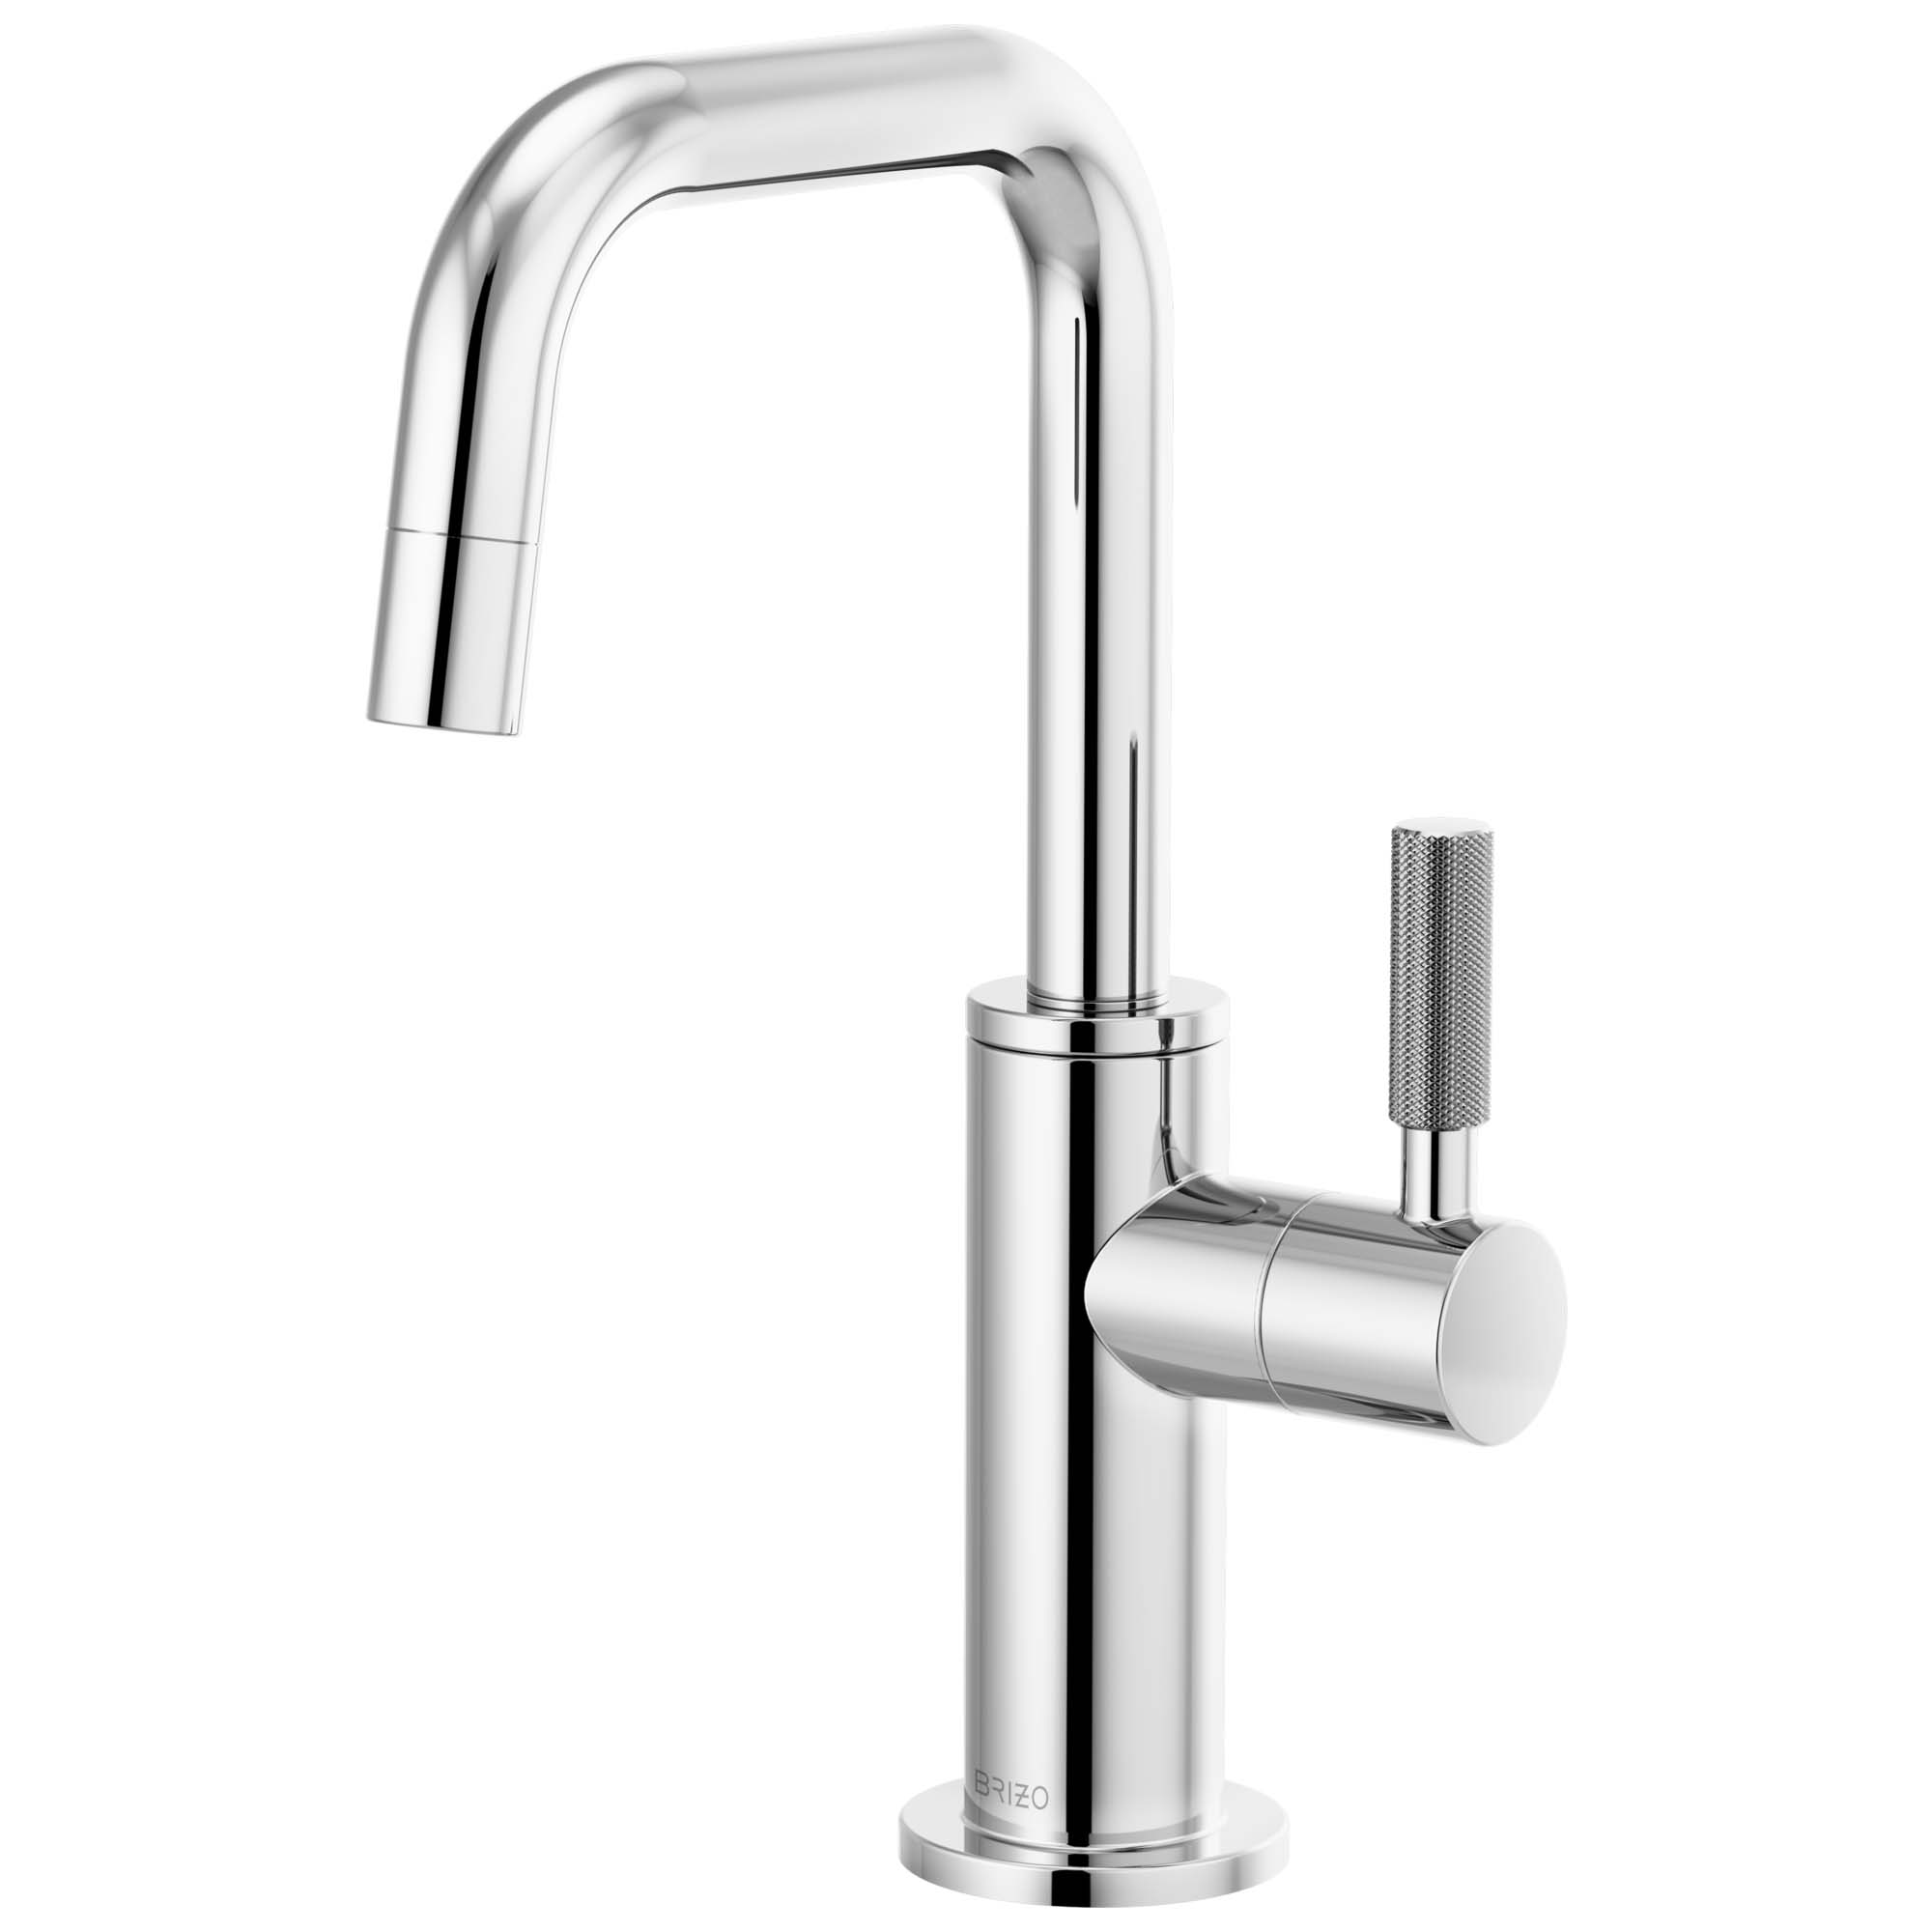 Brizo 61353LF-C-PC Litze Beverage Faucet with Square Spout and Knurled Handle - Chrome